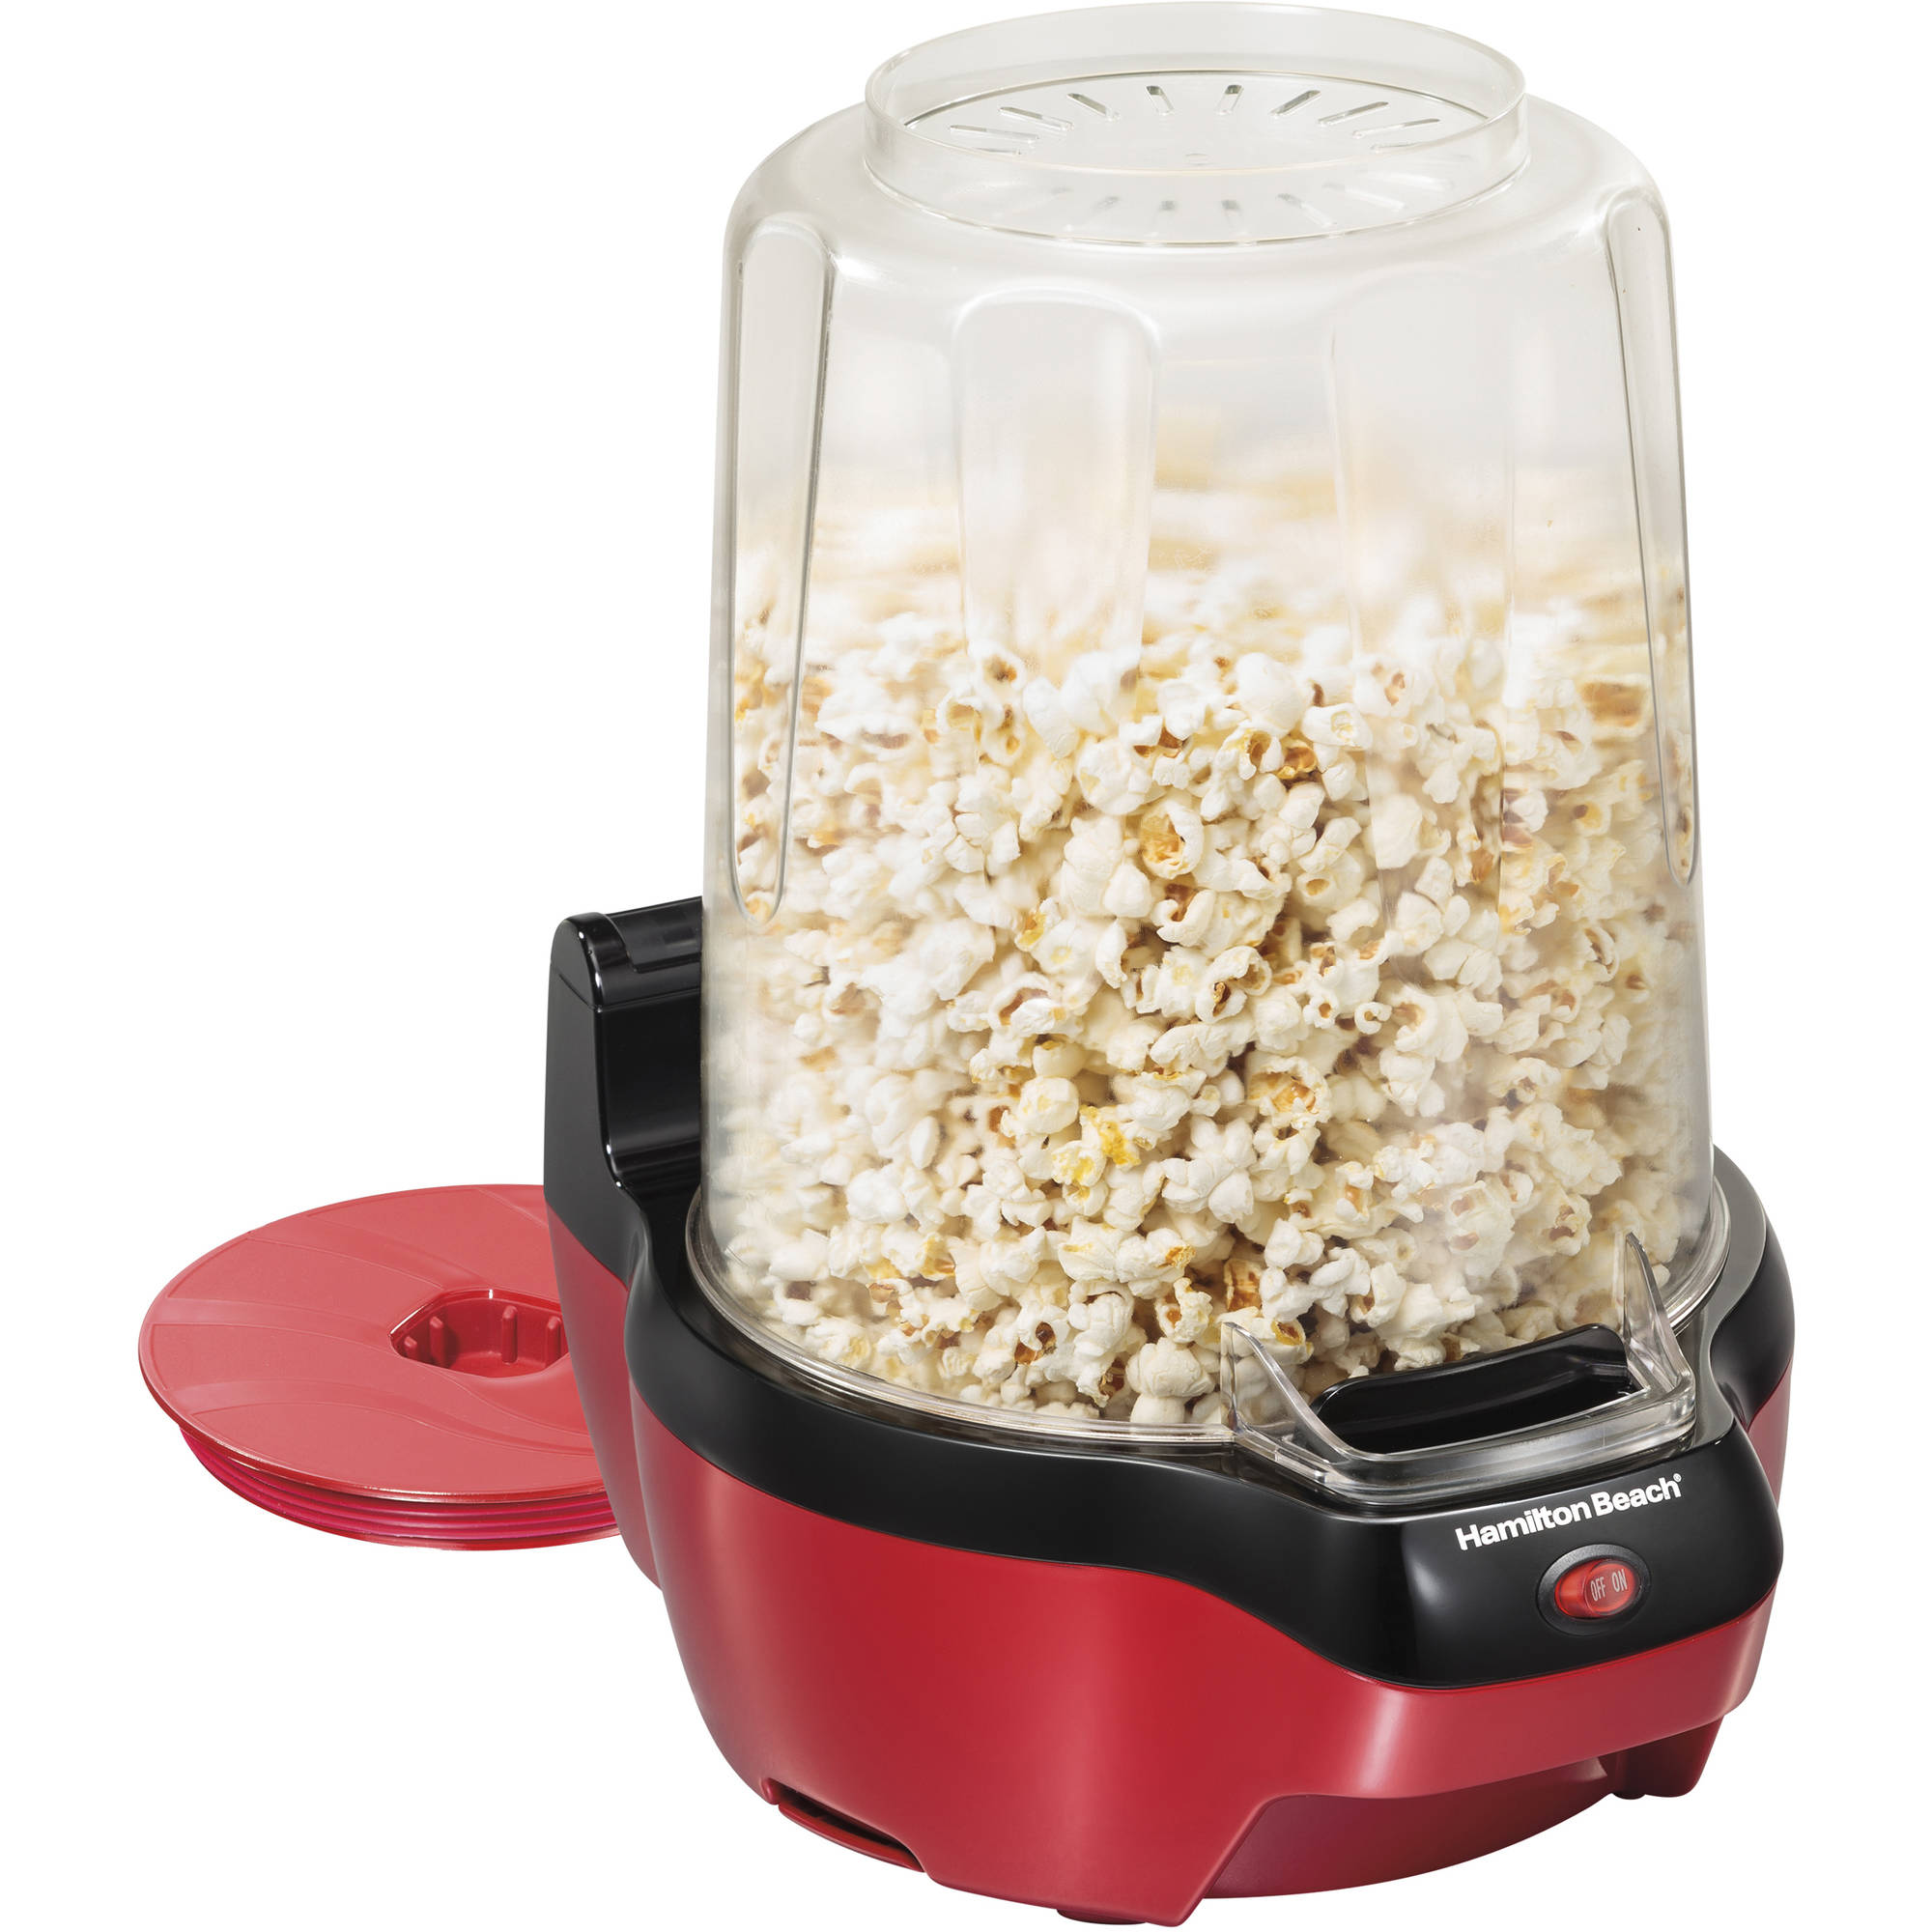 Hamilton Beach Gourmet Popcorn Maker | Model# 73304